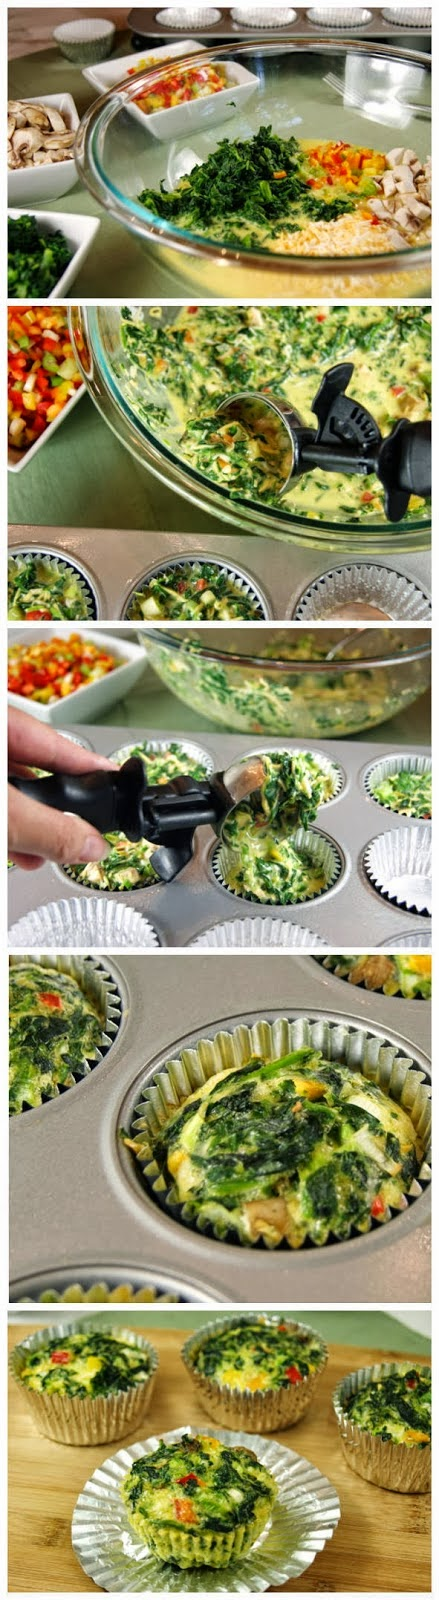 Veggie Quiche Cups To-Go